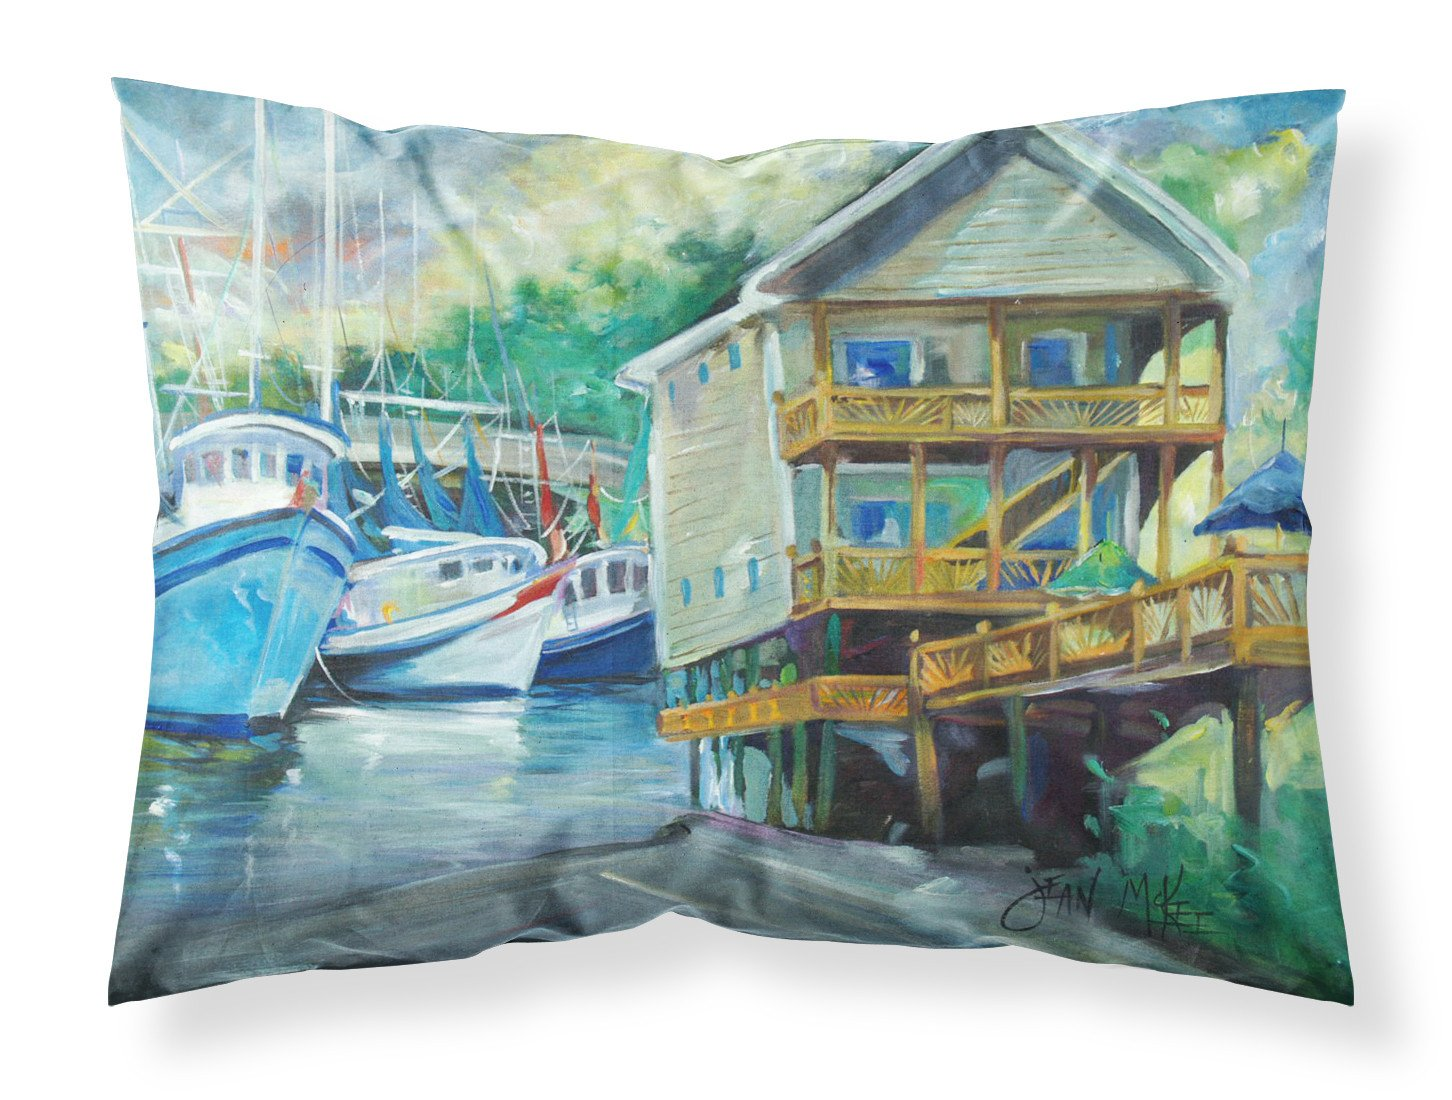 Ocean Springs Harbour Landing Fabric Standard Pillowcase JMK1069PILLOWCASE by Caroline's Treasures